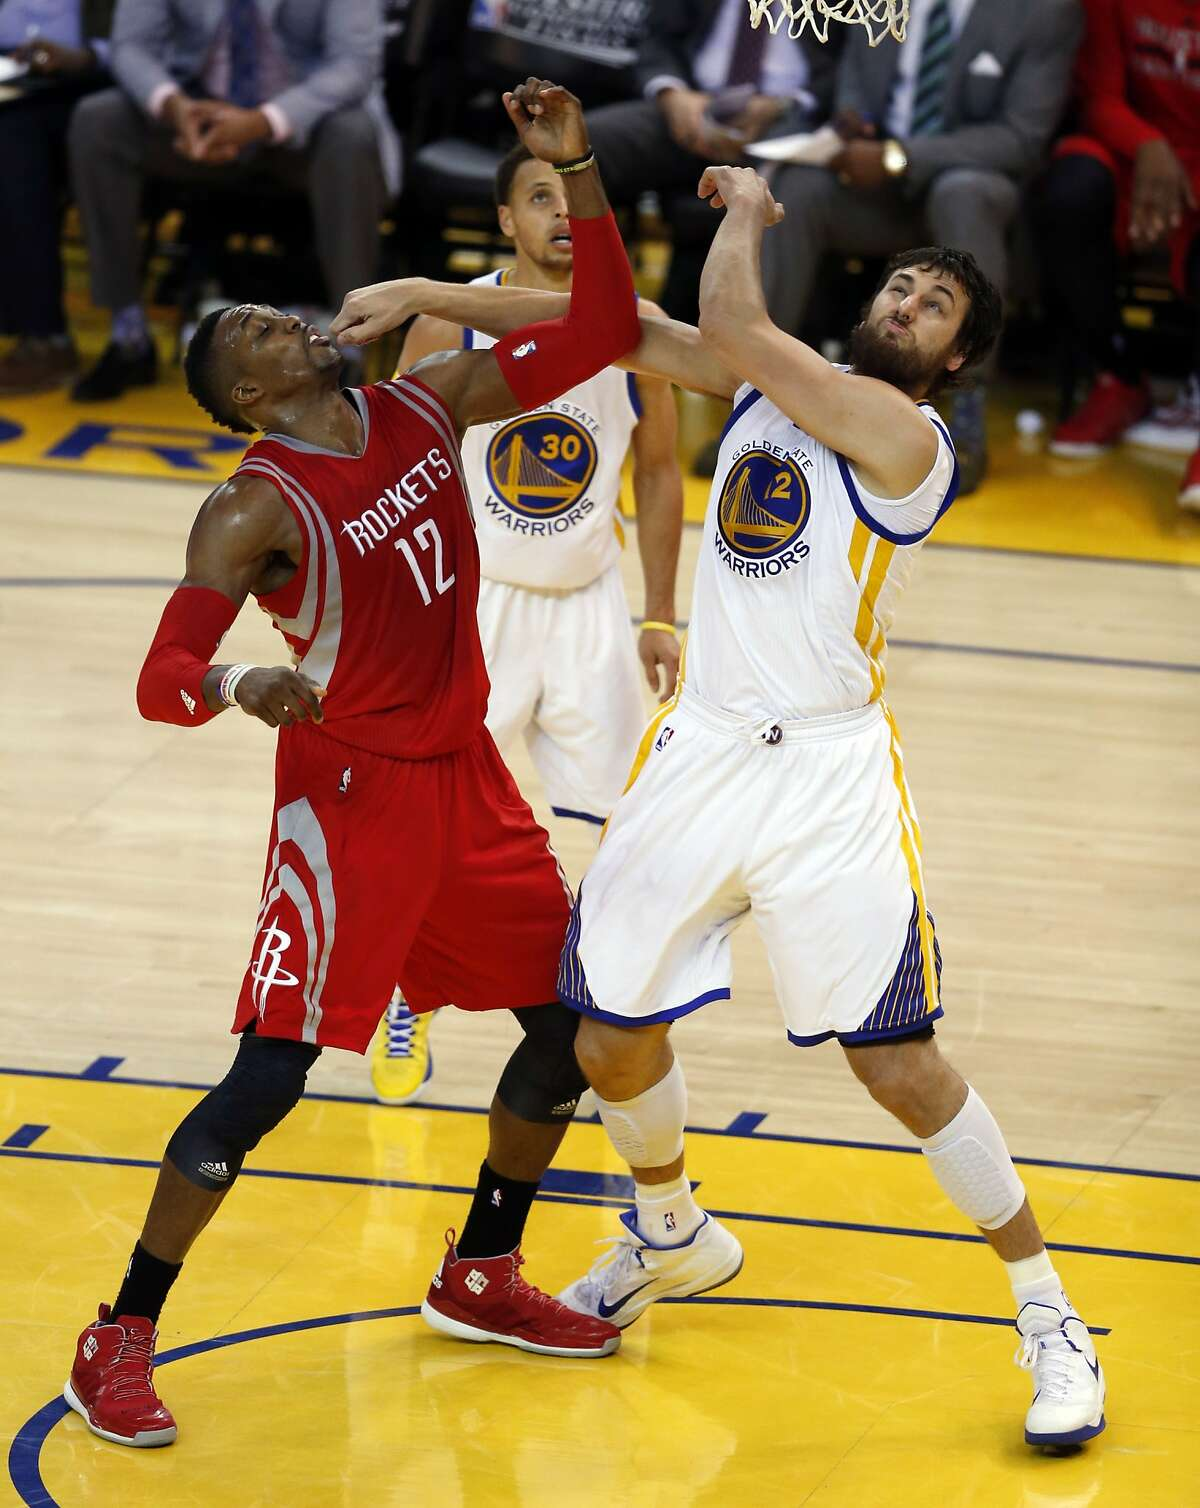 Golden State Warriors' Andrew Bogut battles Houston Rockets' Dwight Howard in 2nd quarter in Game 5 of NBA Playoffs' Western Conference Finals at Oracle Arena in Oakland, Calif., on Wednesday, May 27, 2015.